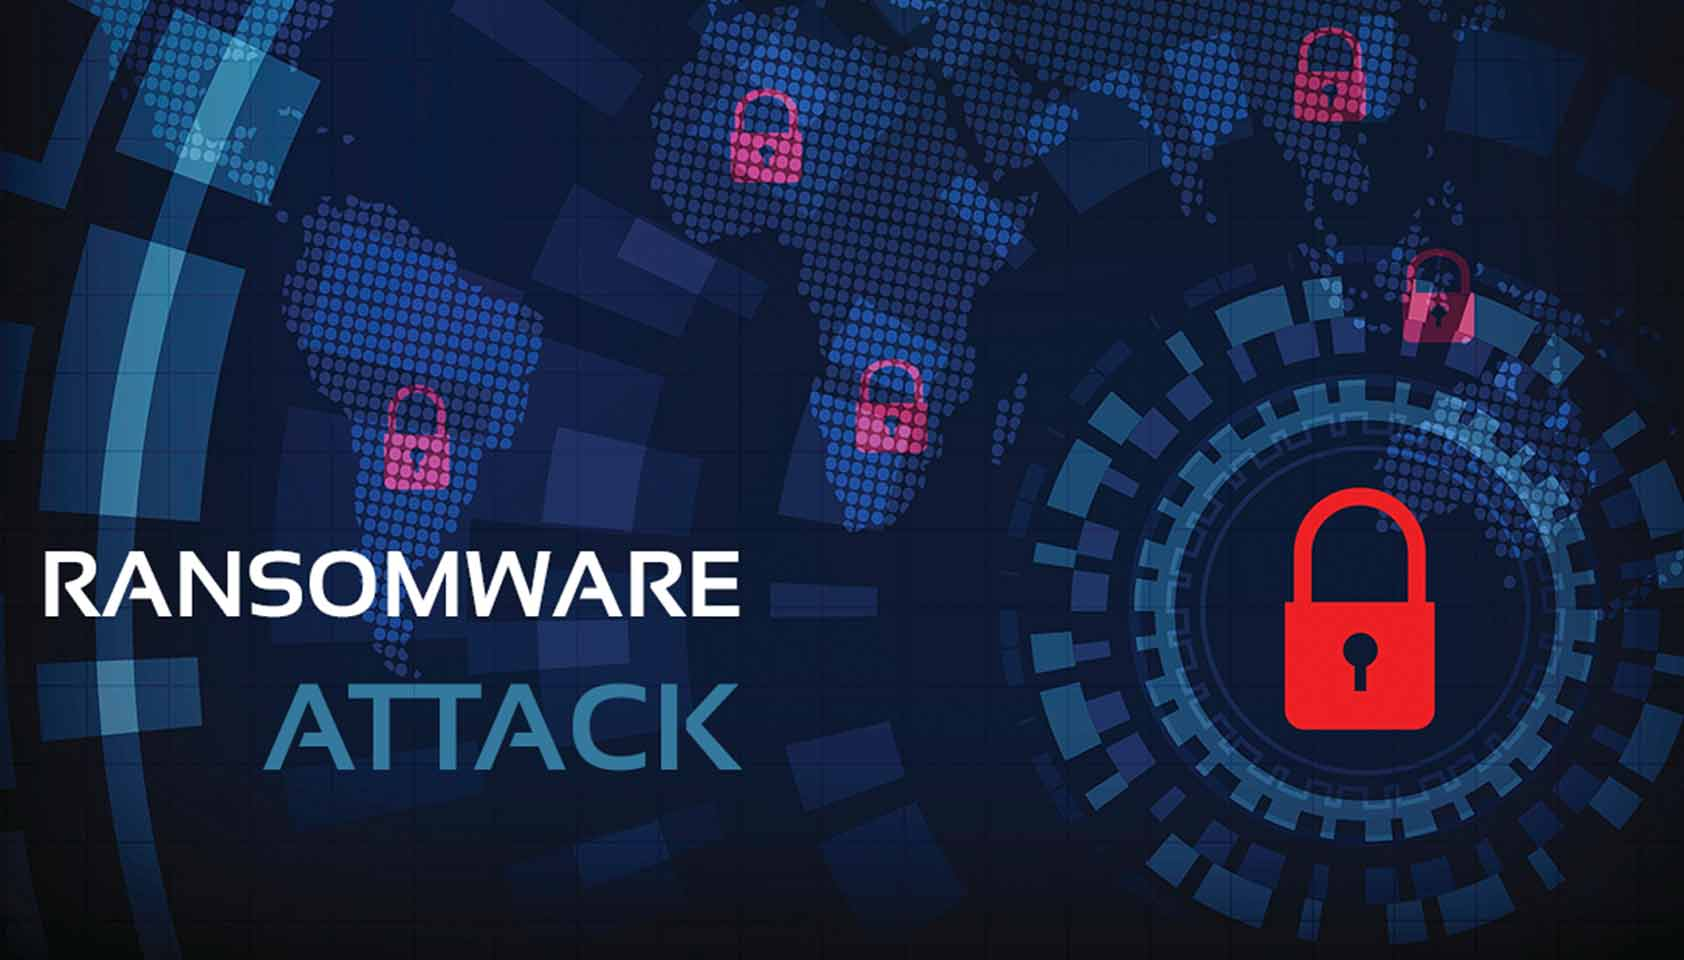 Ransomware Attacks – What to Do If You Suspect You Have an Infection